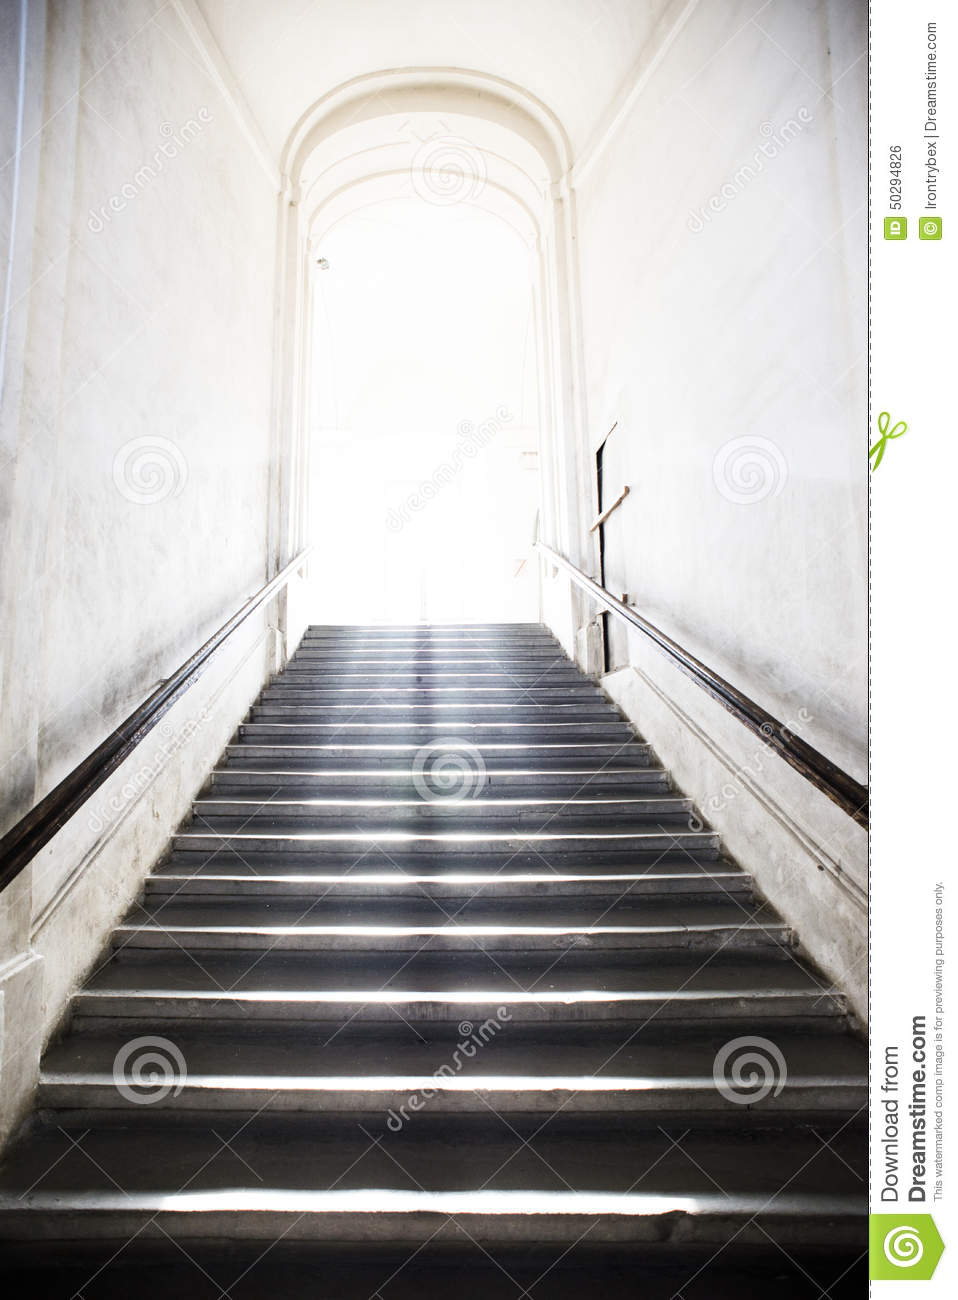 Tunnel Stair Going Up To The Light Stock Photo Image